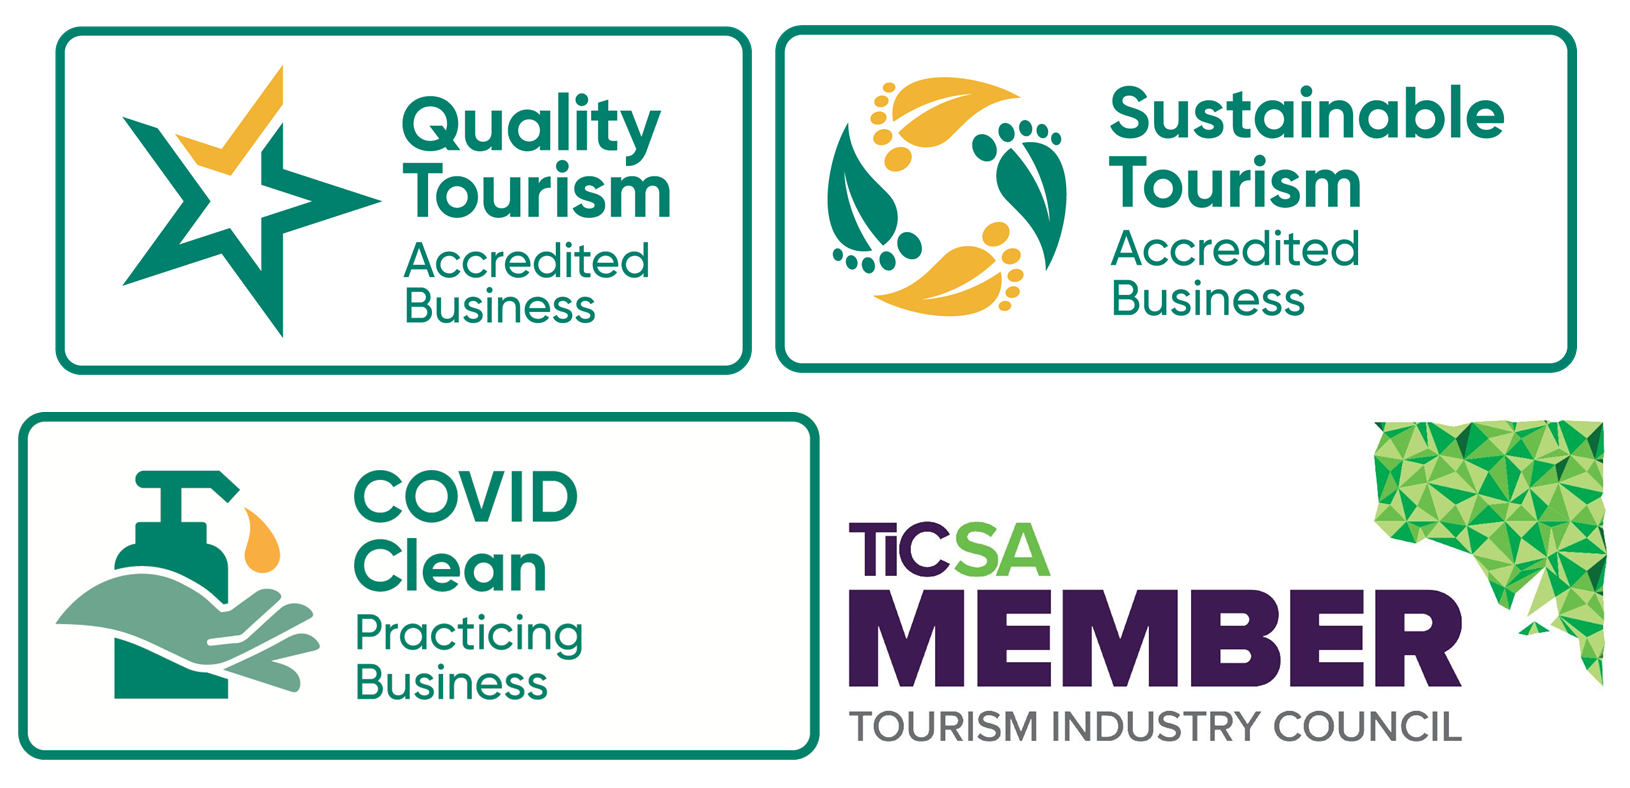 Quality Tourism & Sustainable Tourism Accredited!